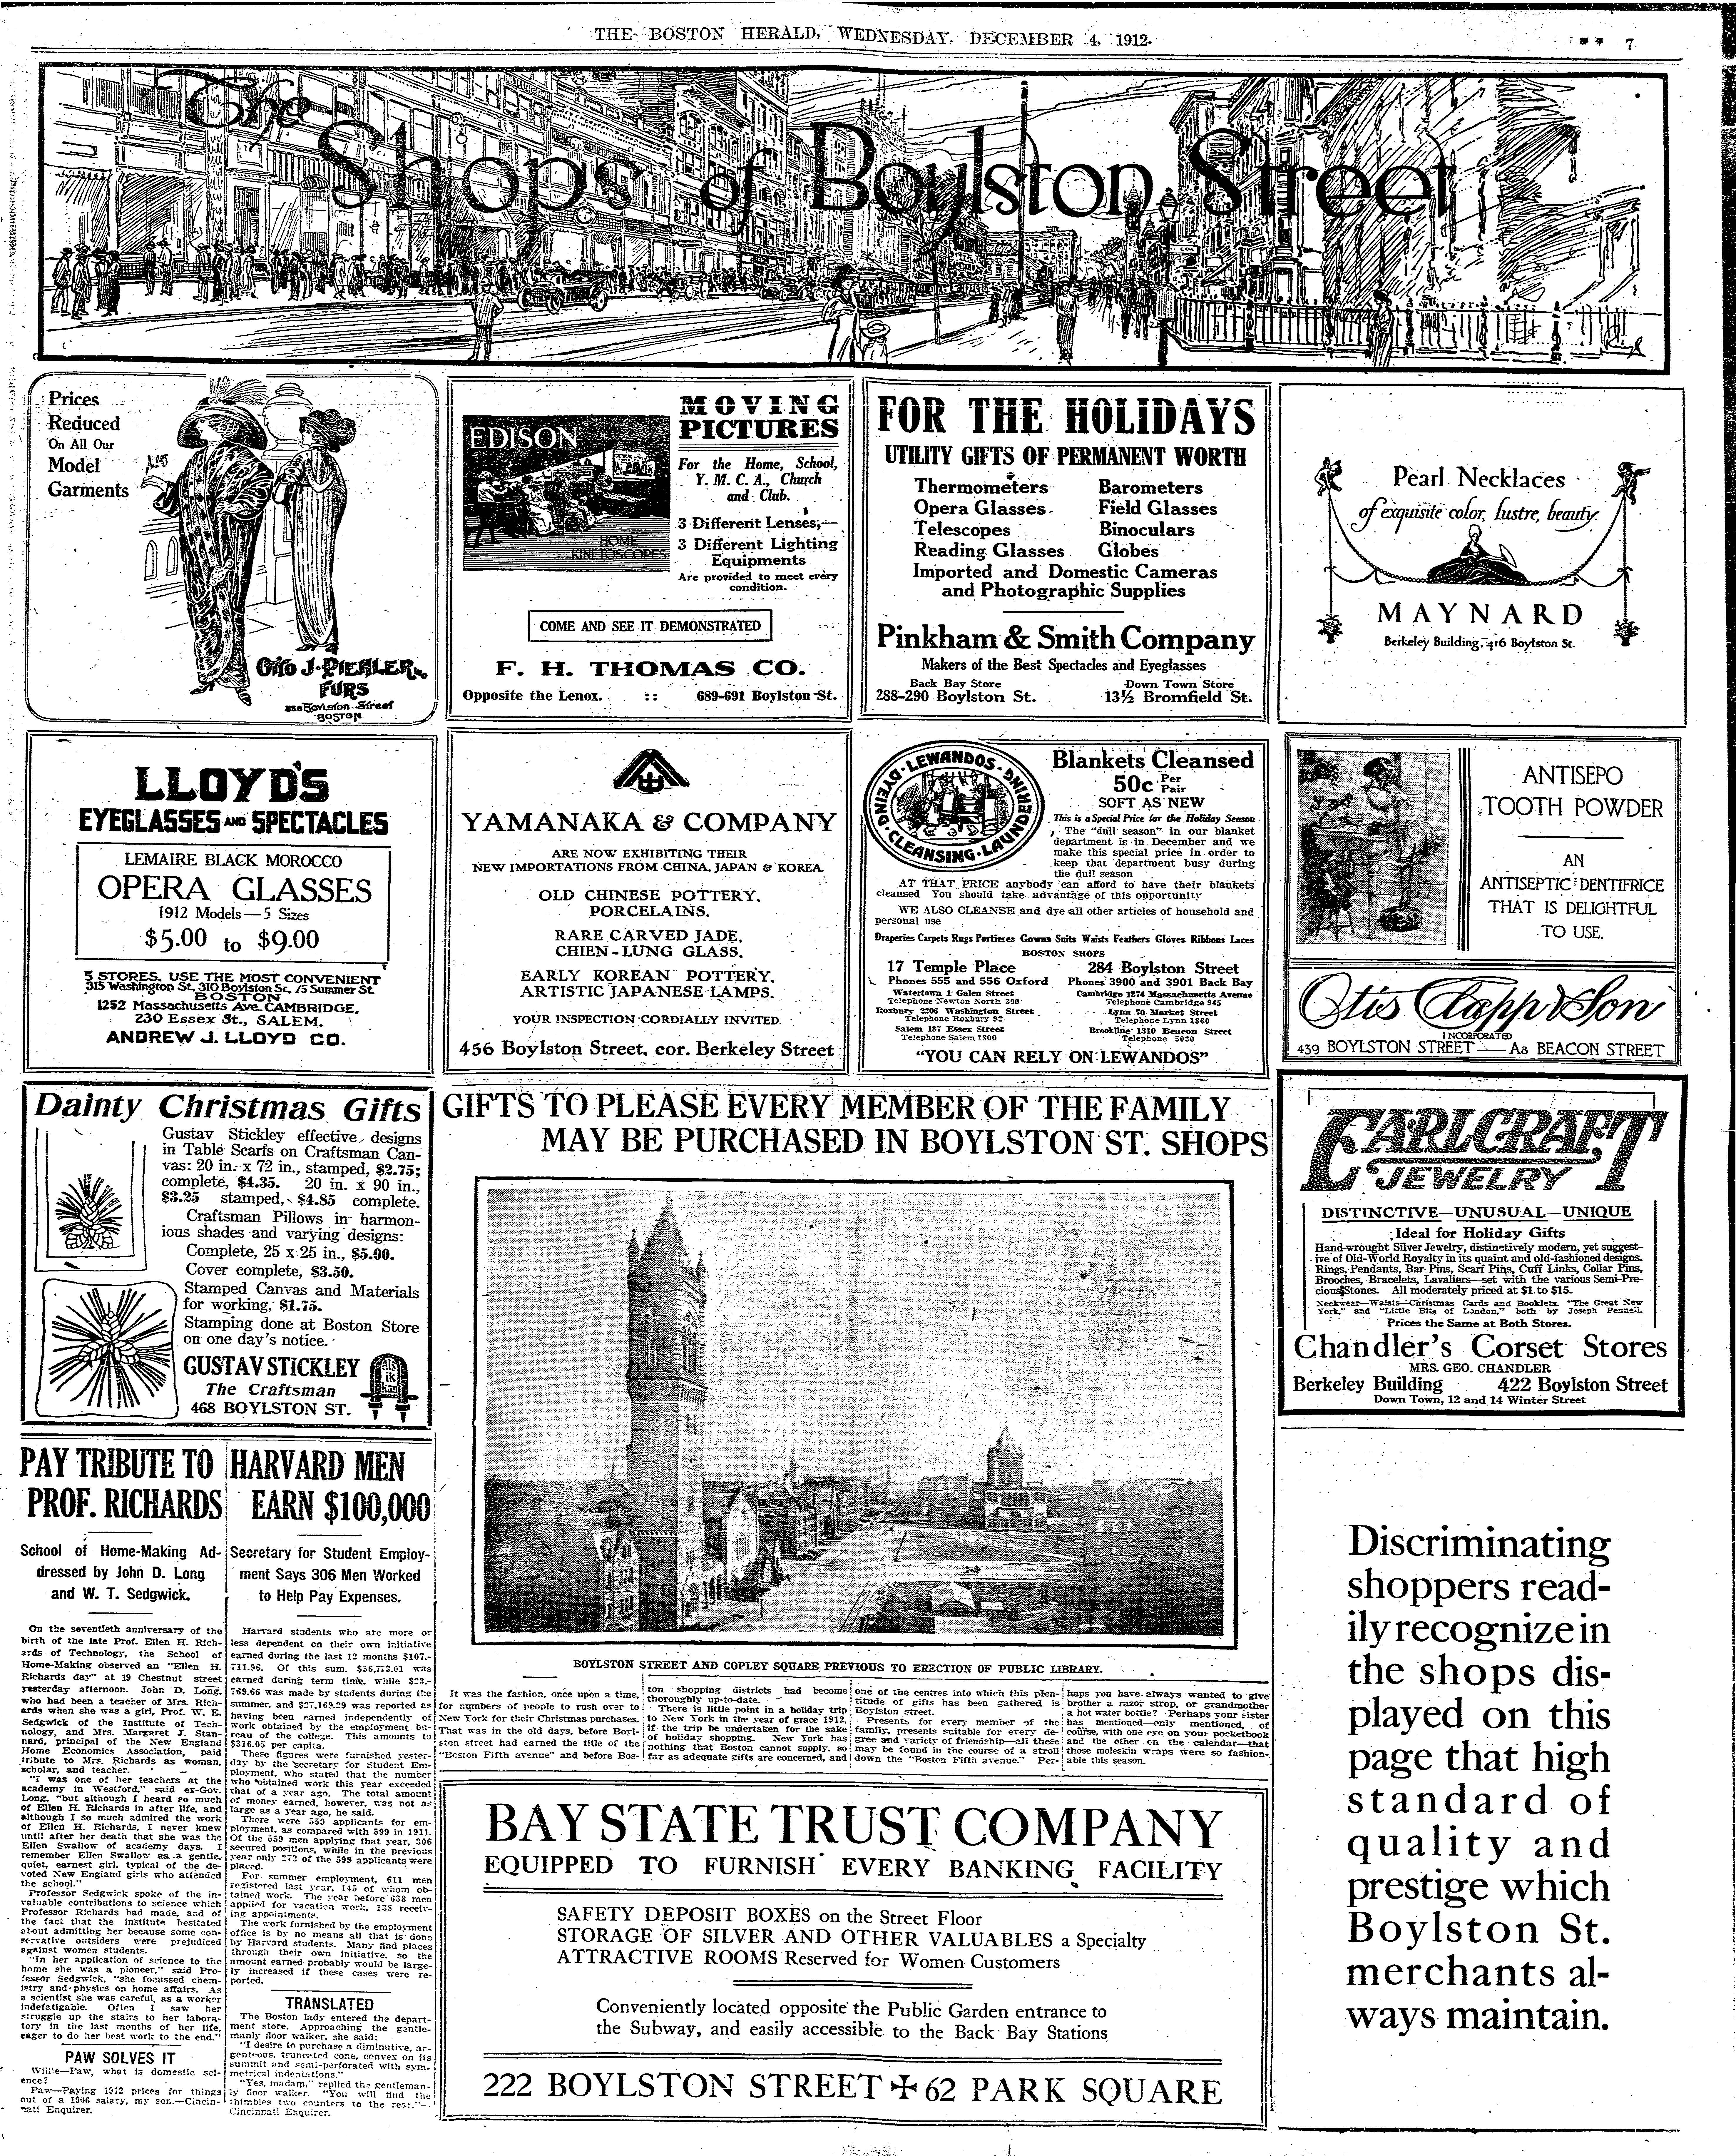 The Boston Herald (4 December 1912) with Pearls Necklace advertisement for Maynard by W.A. Dwiggins.